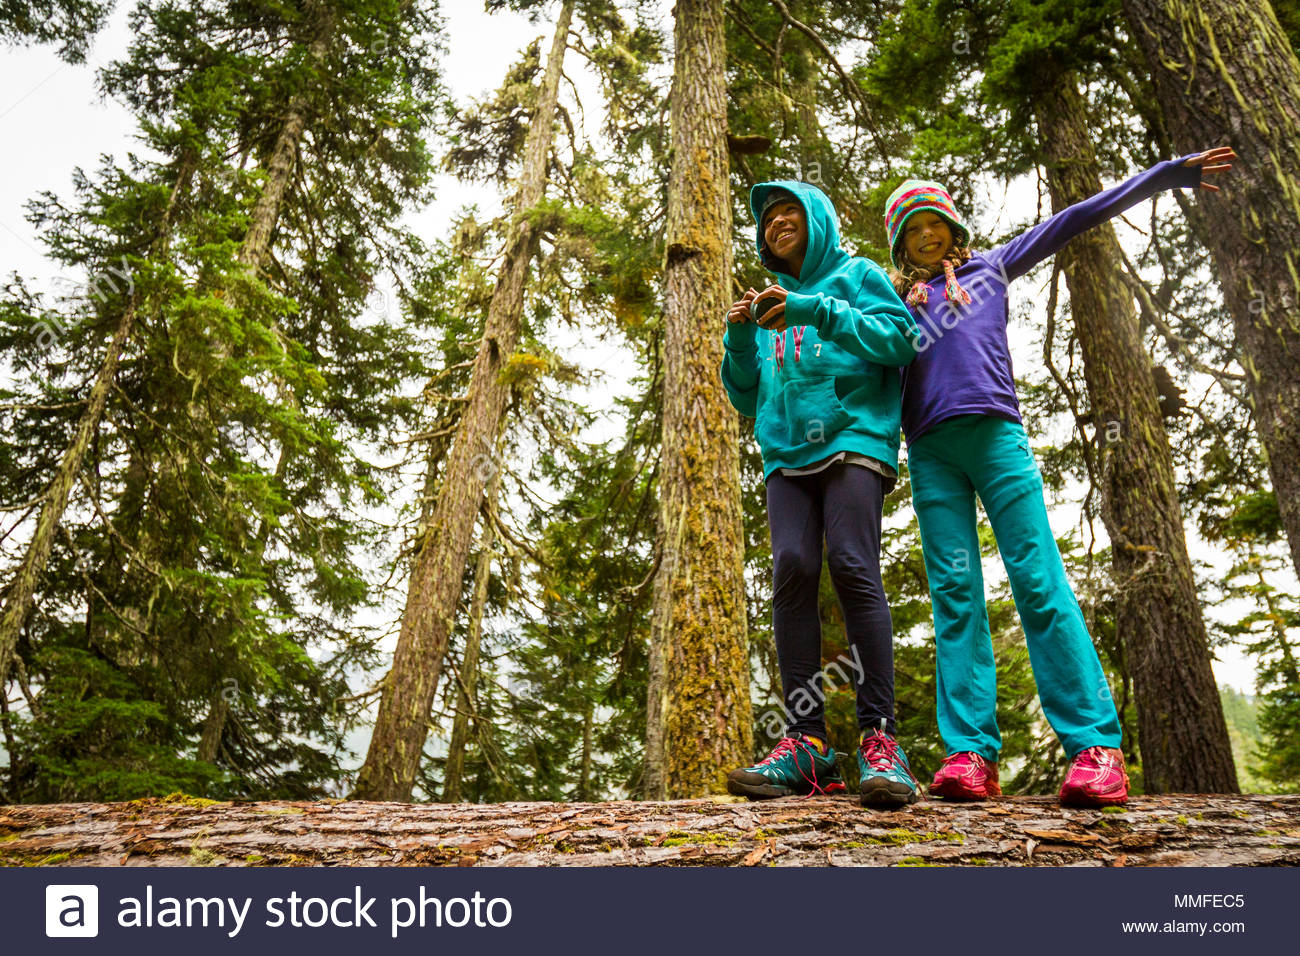 Two young girls enjoy walking along a fallen log in the forest. Stock Photo